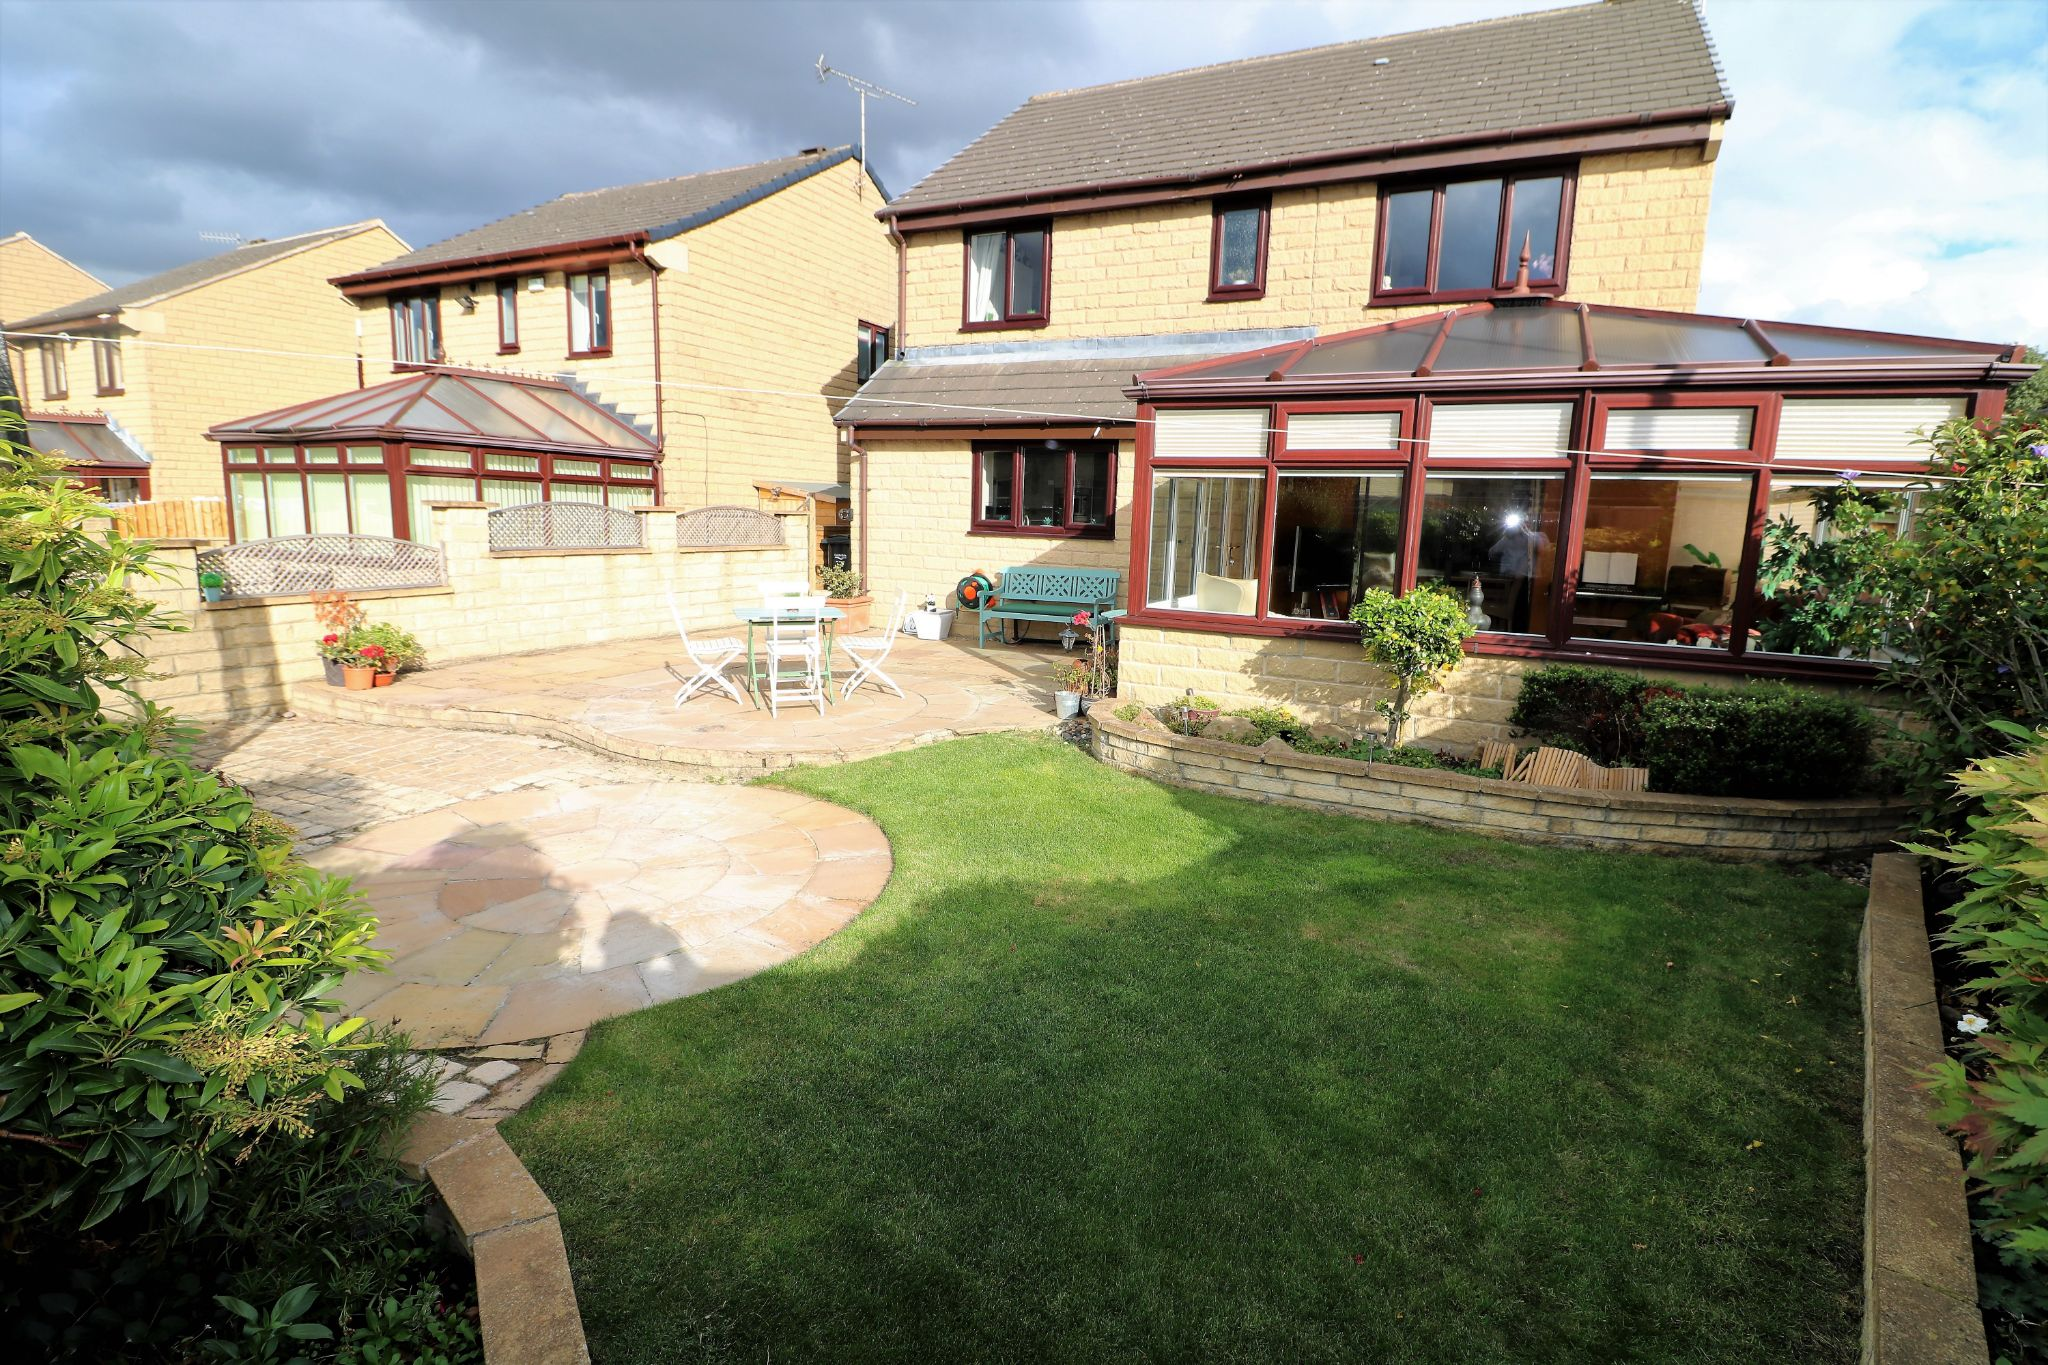 4 Bedroom Detached House For Sale - Photograph 25